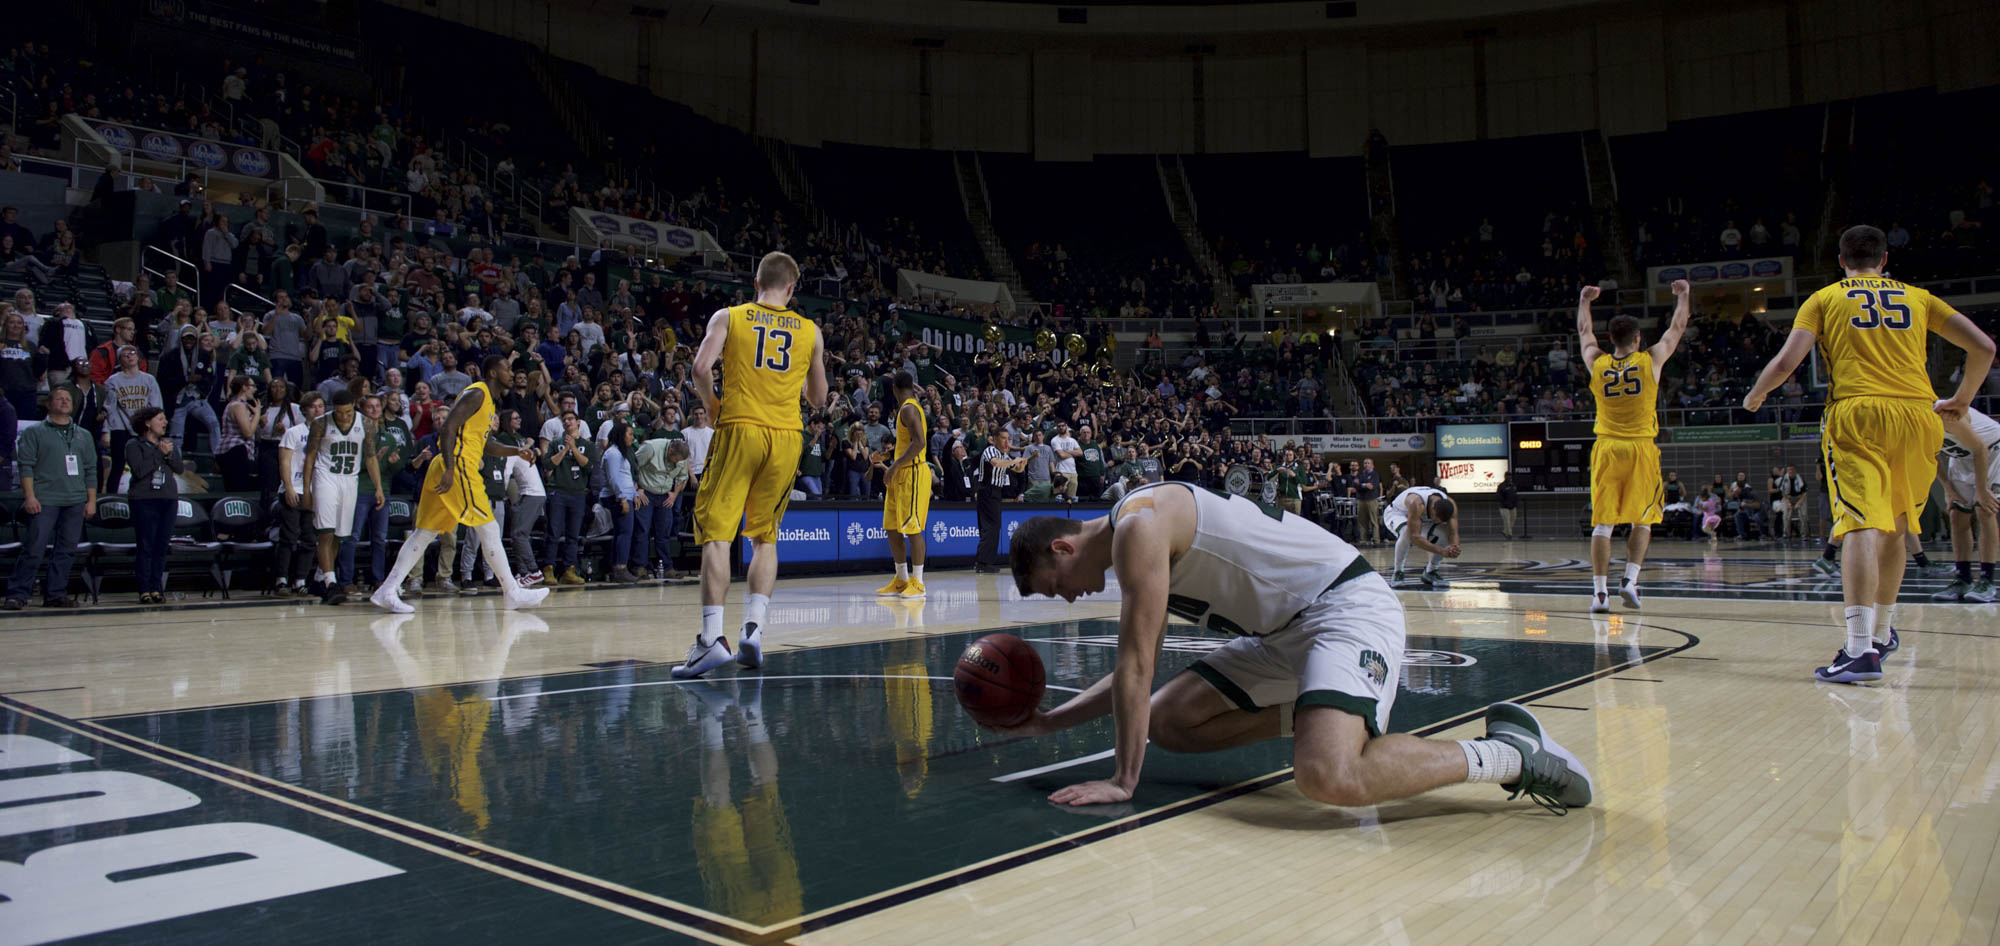 Photos: Ohio University Men's Basketball vs. Toledo Rockets - WOUB Digital